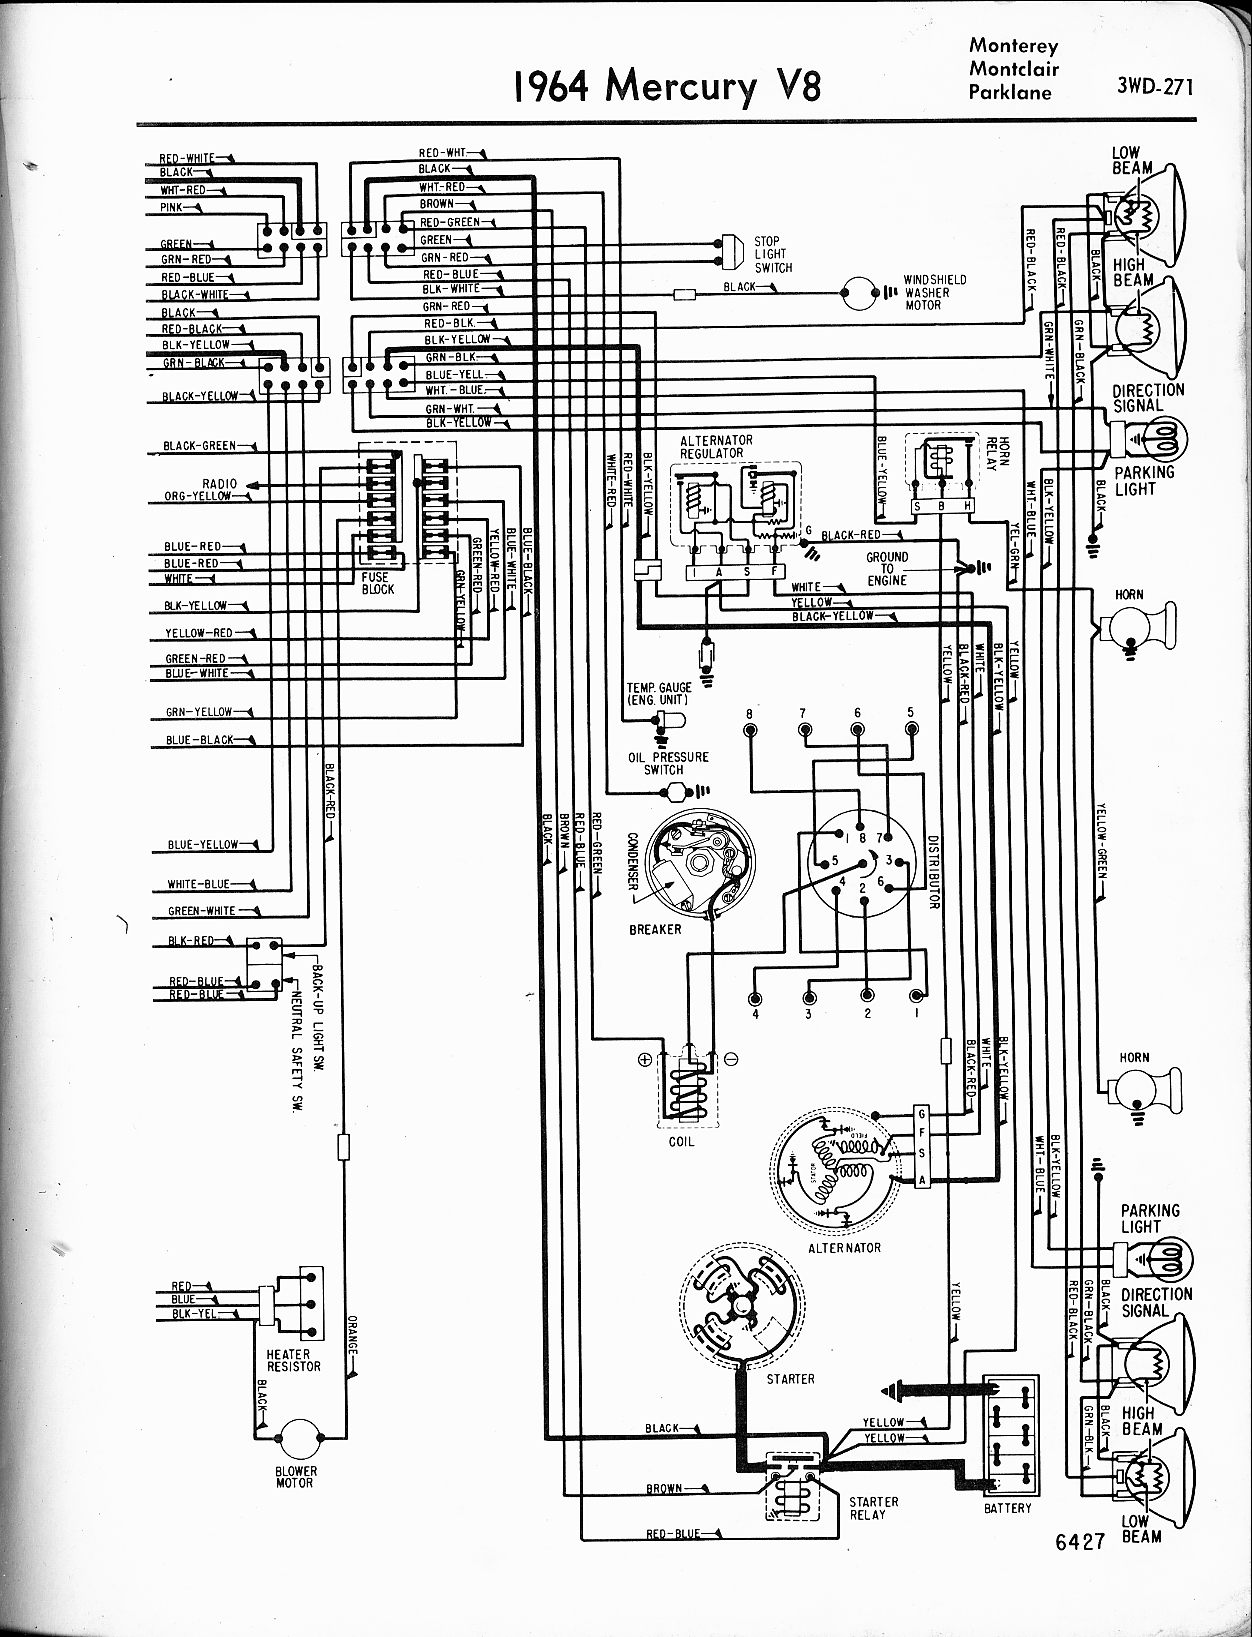 Turn Signal Wiring Diagram 1950 Merc Libraries 64 Mustang 1949 Mercury Third Levelmercury Diagrams The Old Car Manual Project